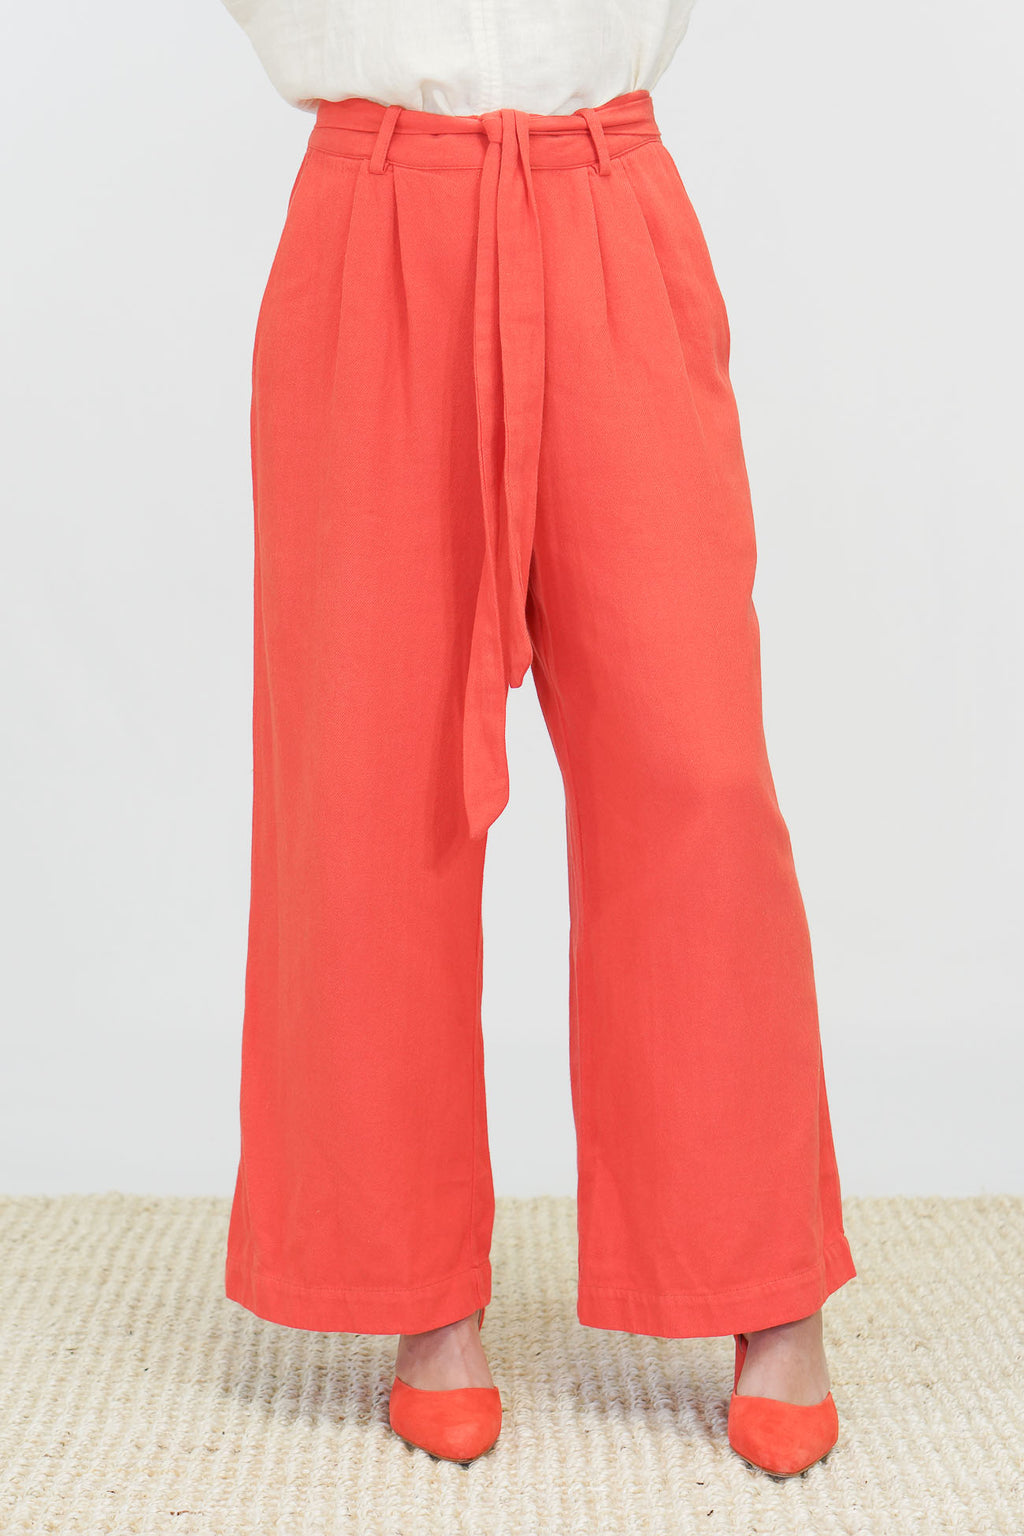 Trovata Tina Wide Leg Linen Pants in Poppy